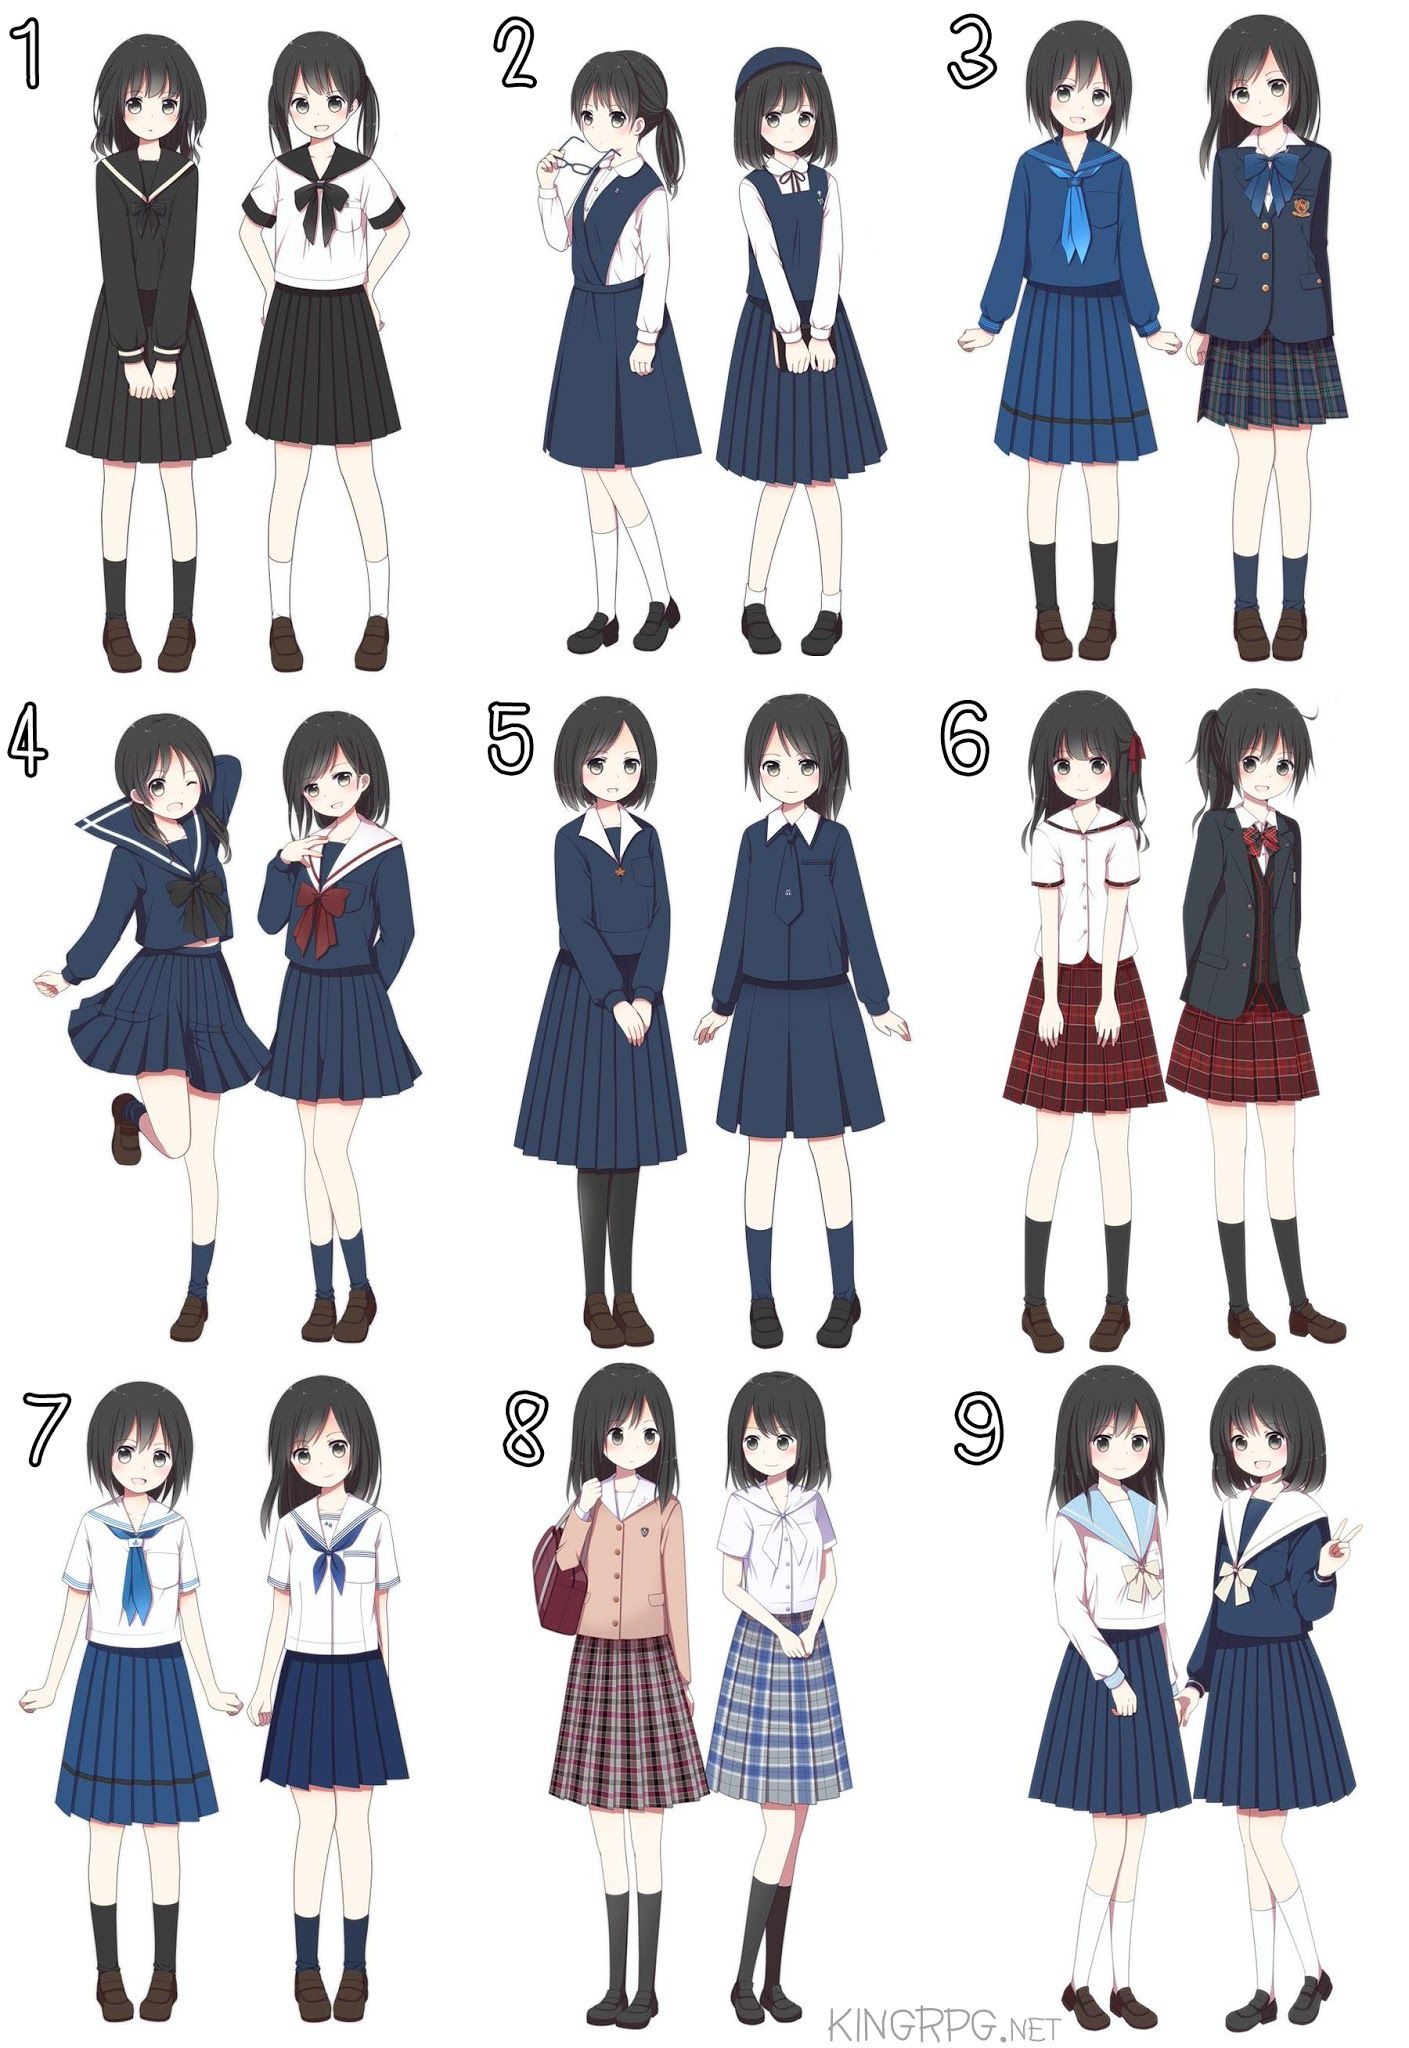 Pin By Vanessa C On Reference Inspiration Anime Outfits Manga